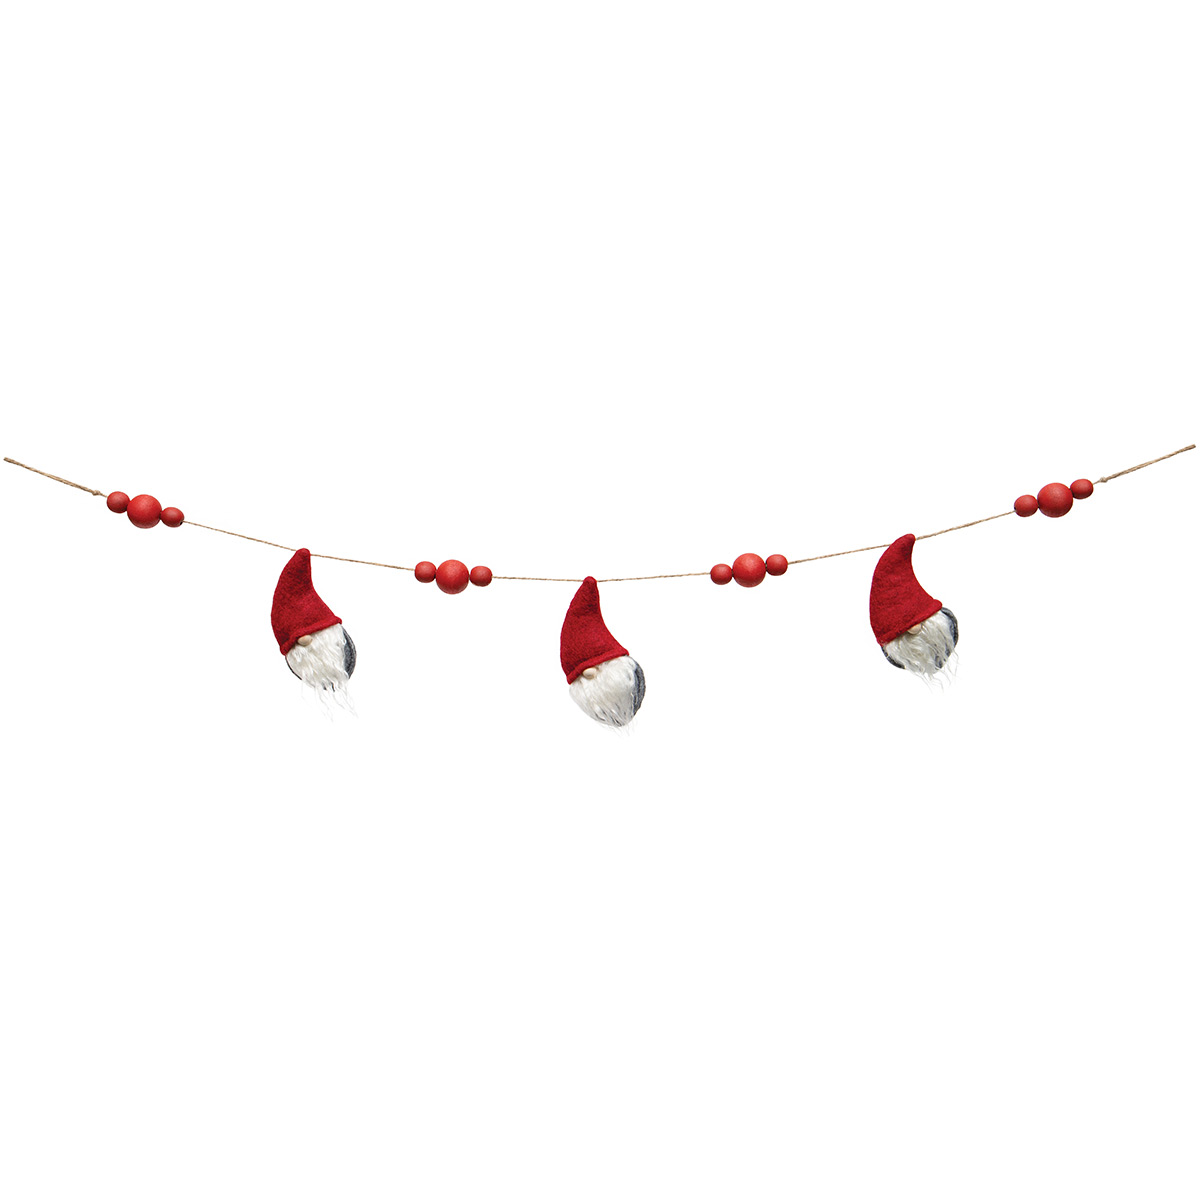 MINI GNOME X3 GARLAND RED/GREY WITH WOOD NOSES